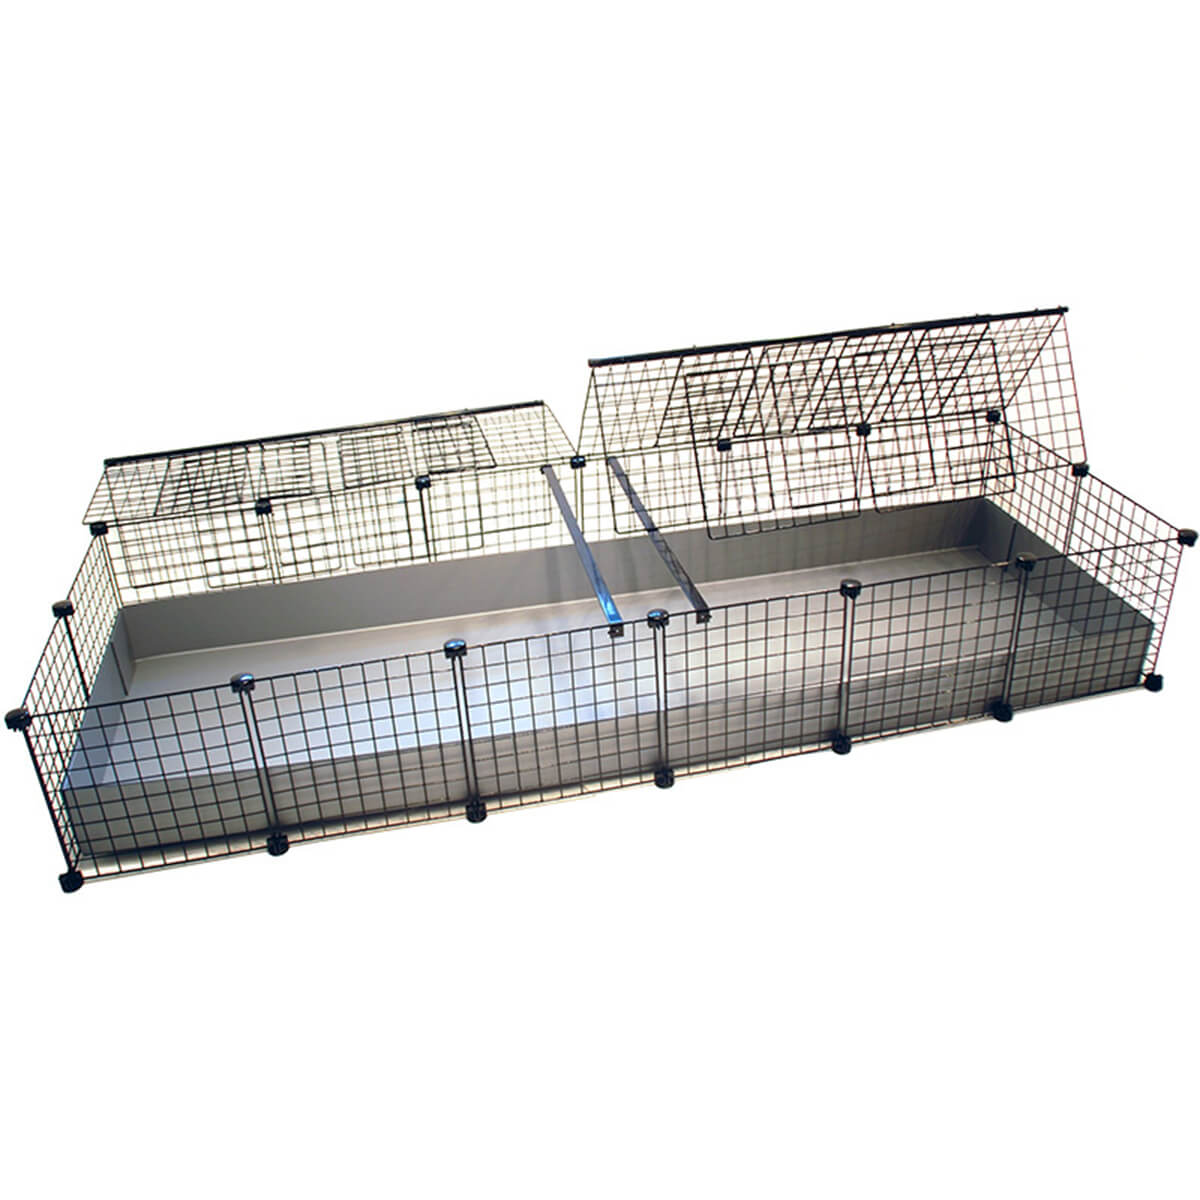 Jumbo 2x6 grids covered standard covered cages c c for Where to get c c cages